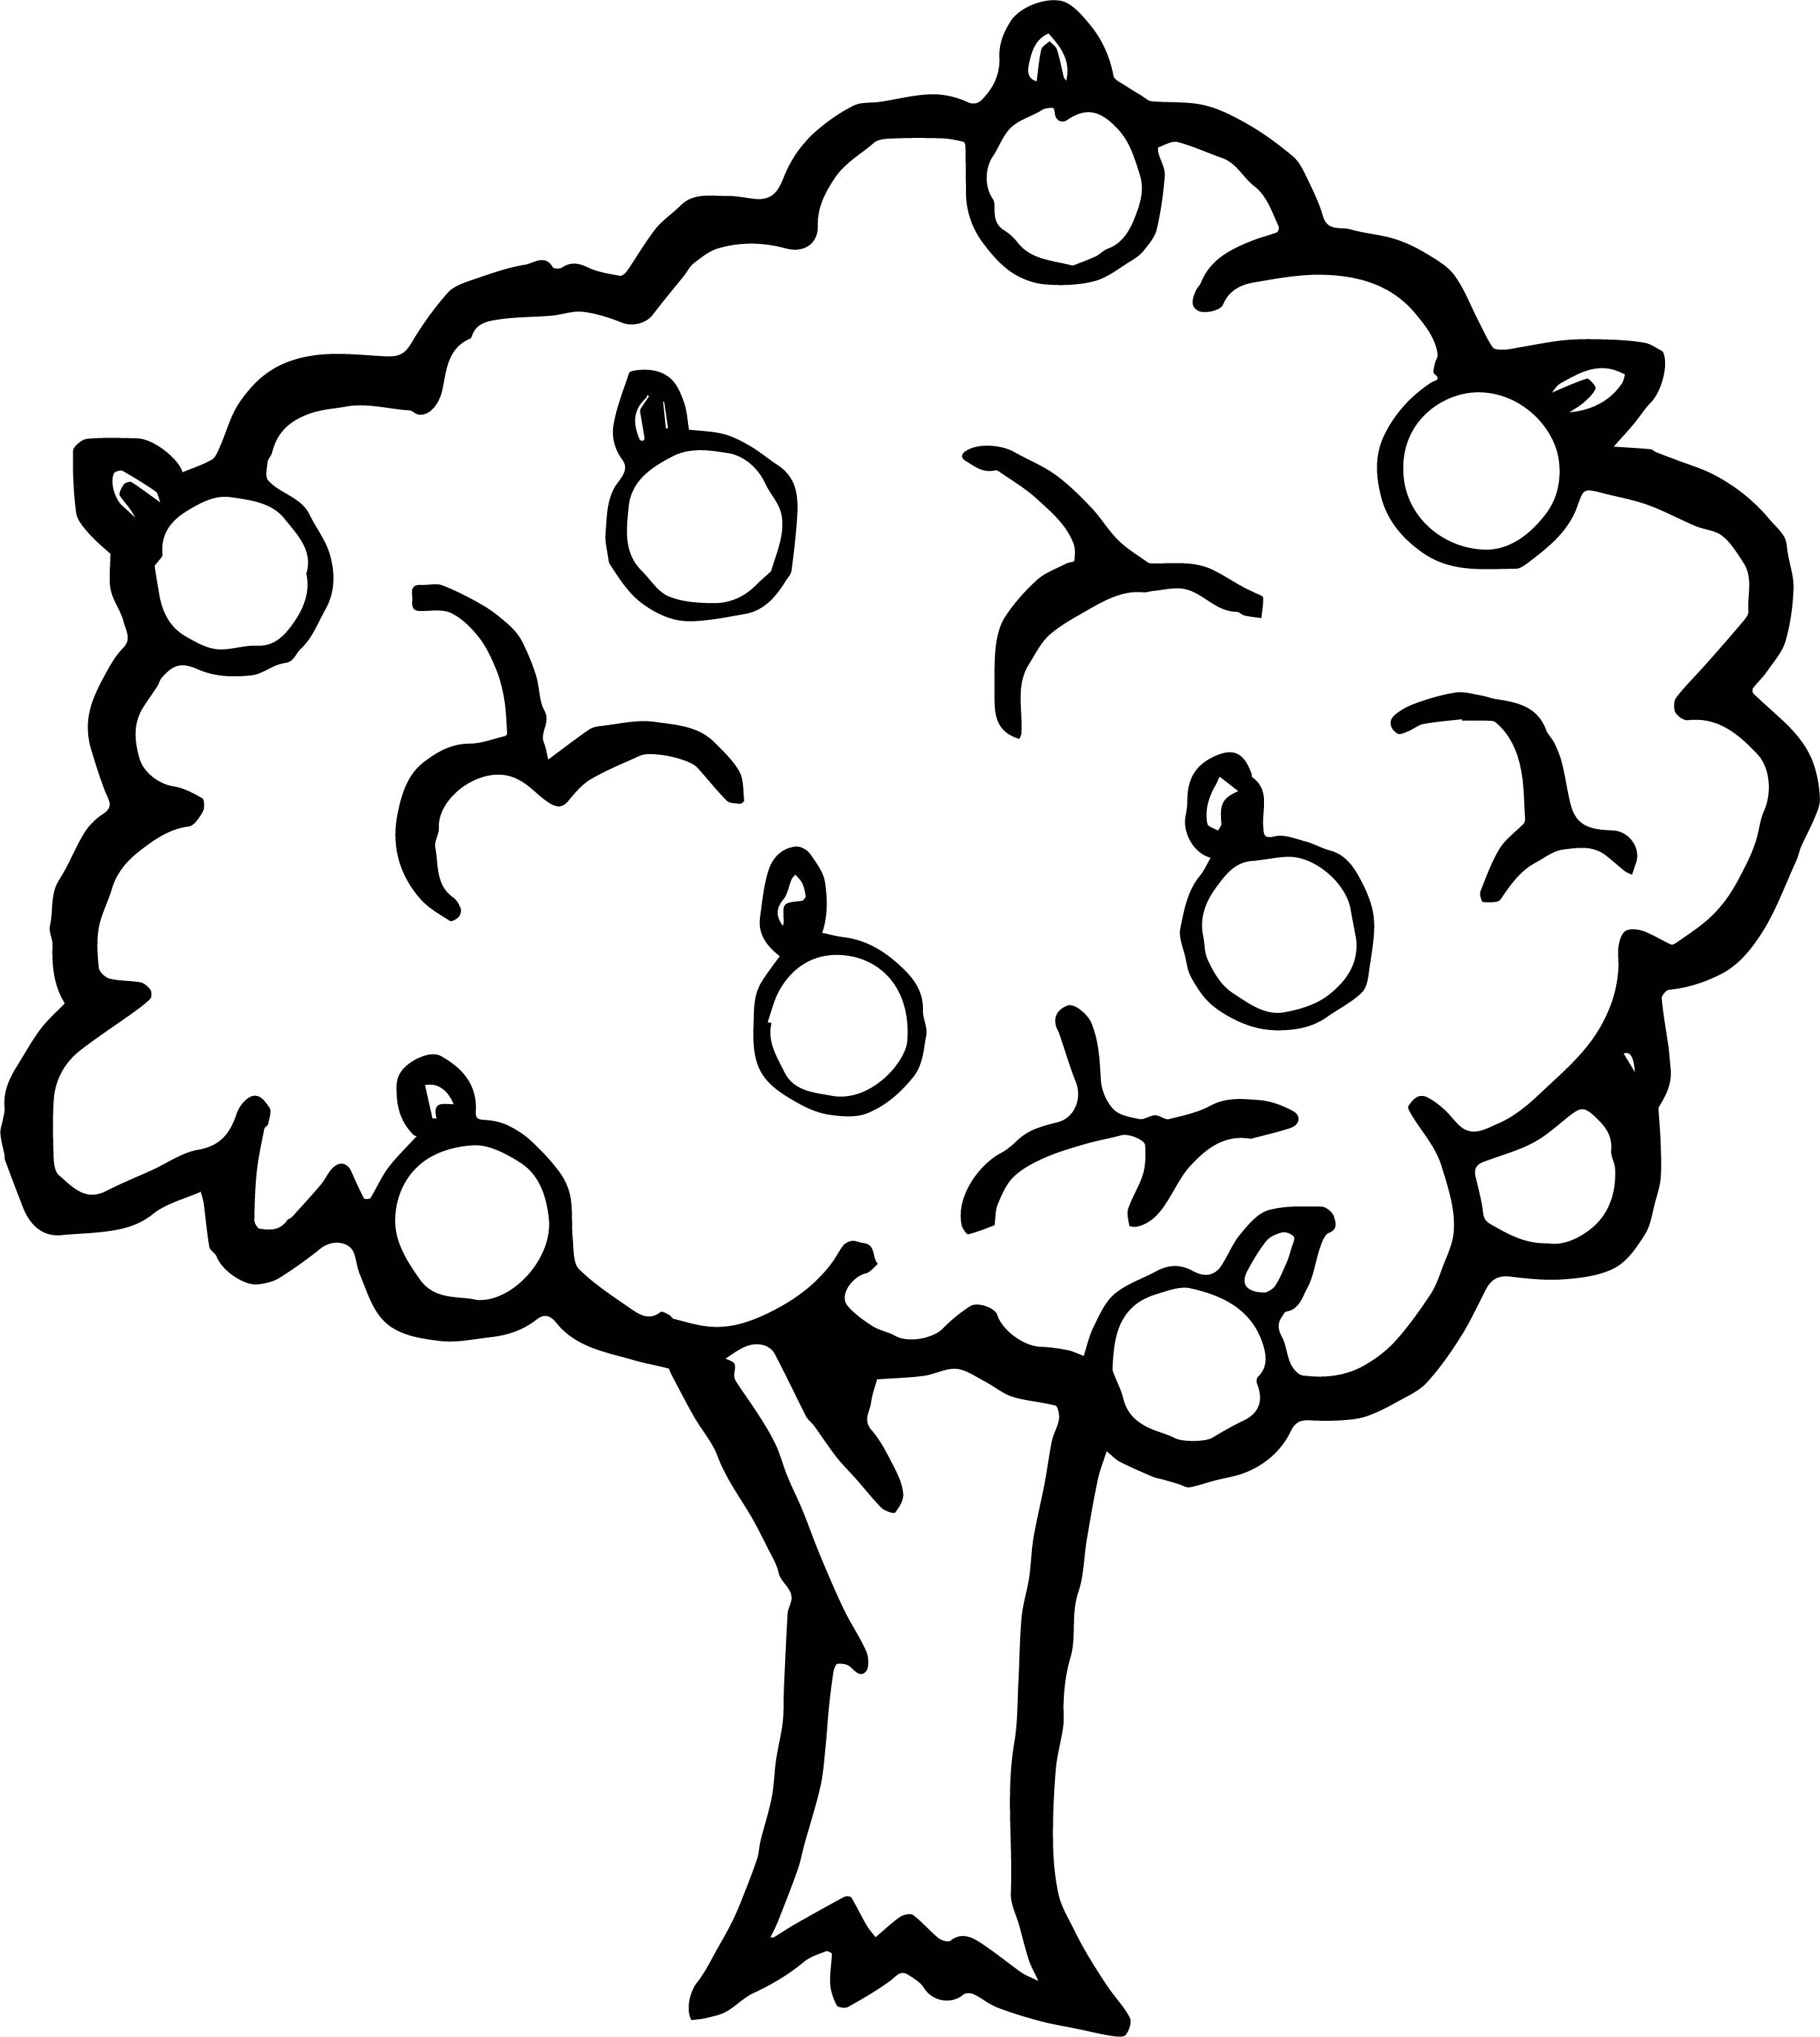 apple tree coloring sheet apple tree coloring pages downloadable and printable apple sheet tree coloring